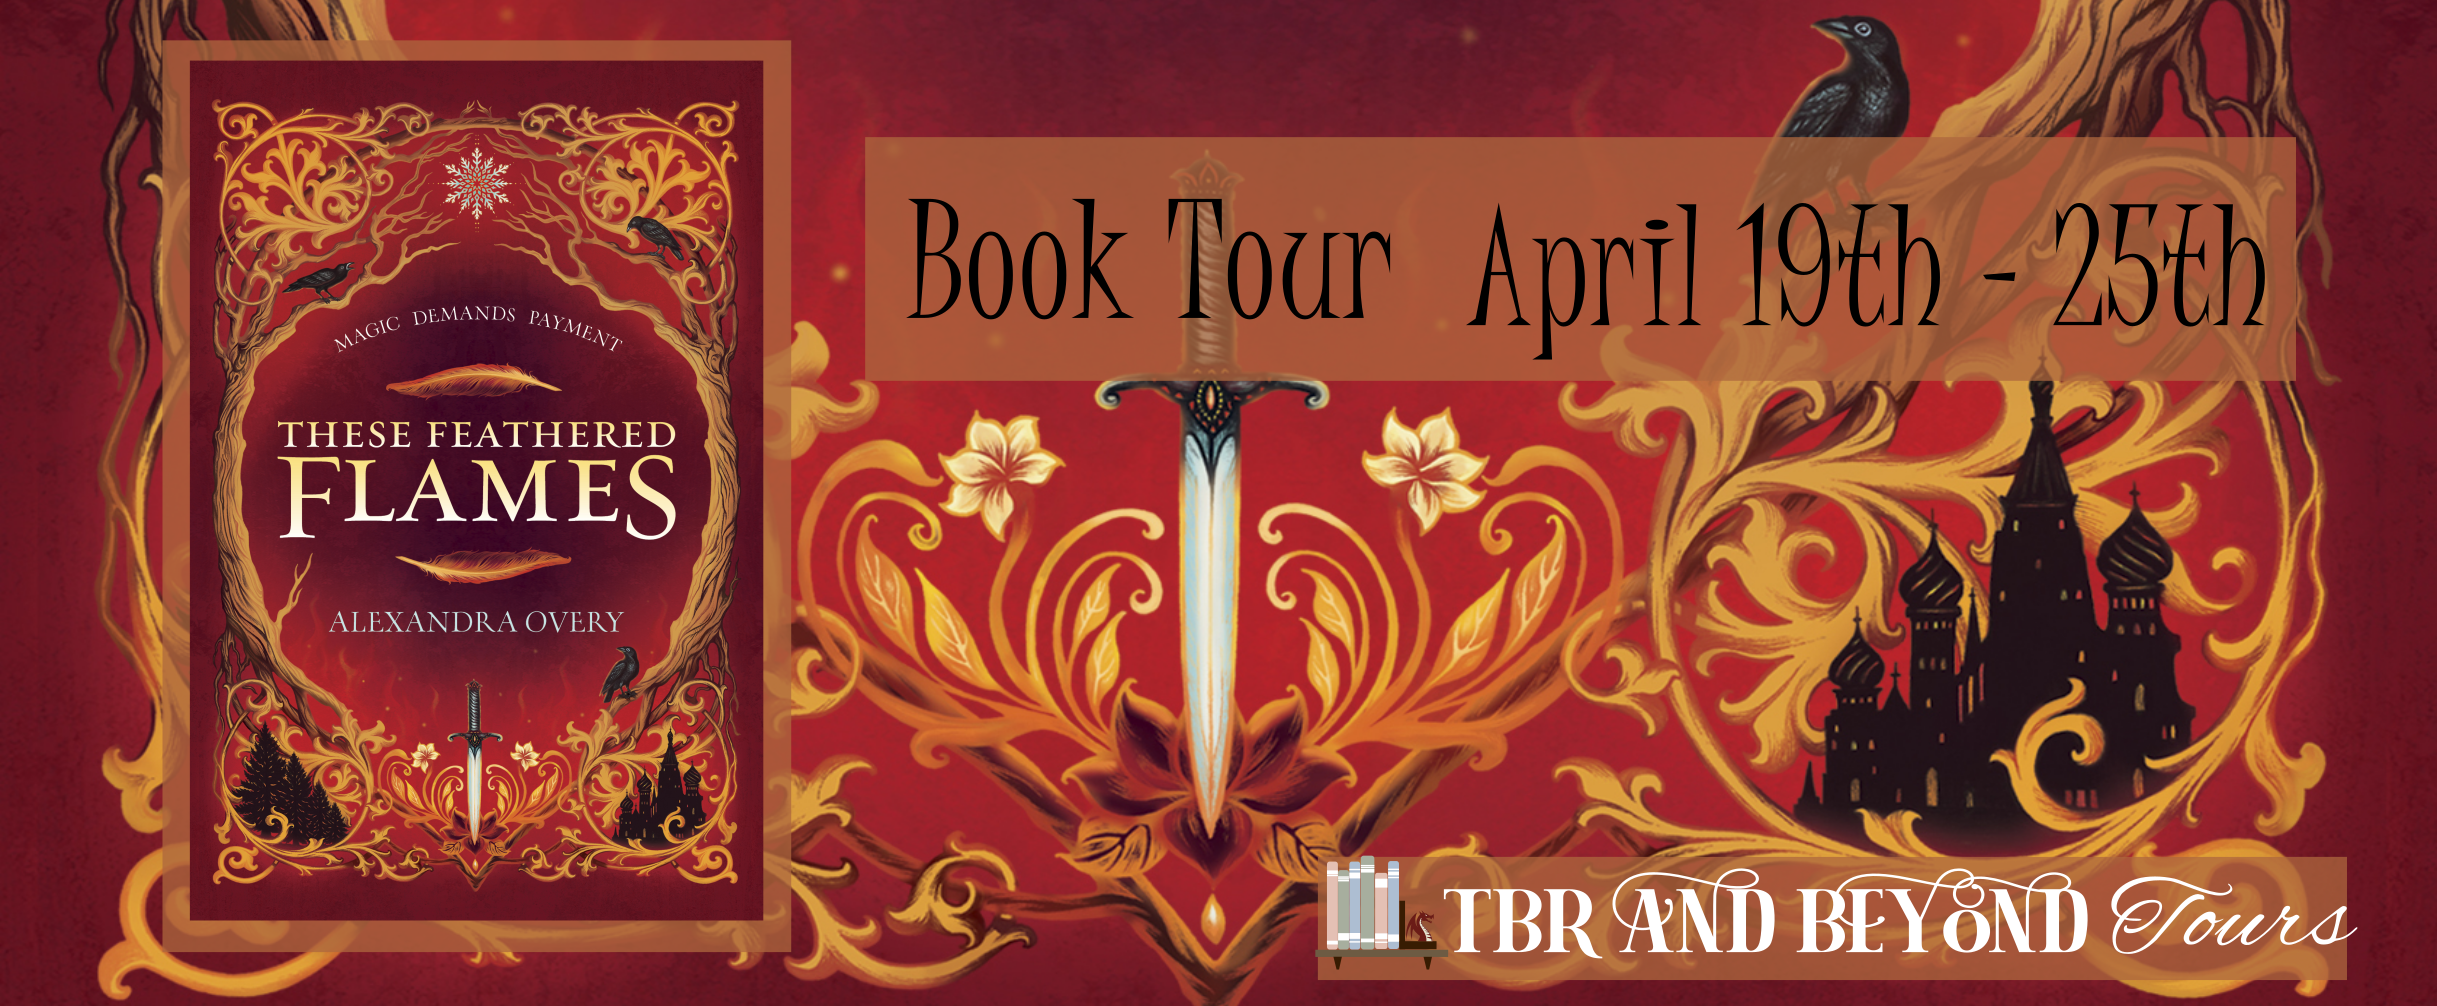 Blog Tour: These Feathered Flames by Alexandra Overy (Interview + Giveaway!)